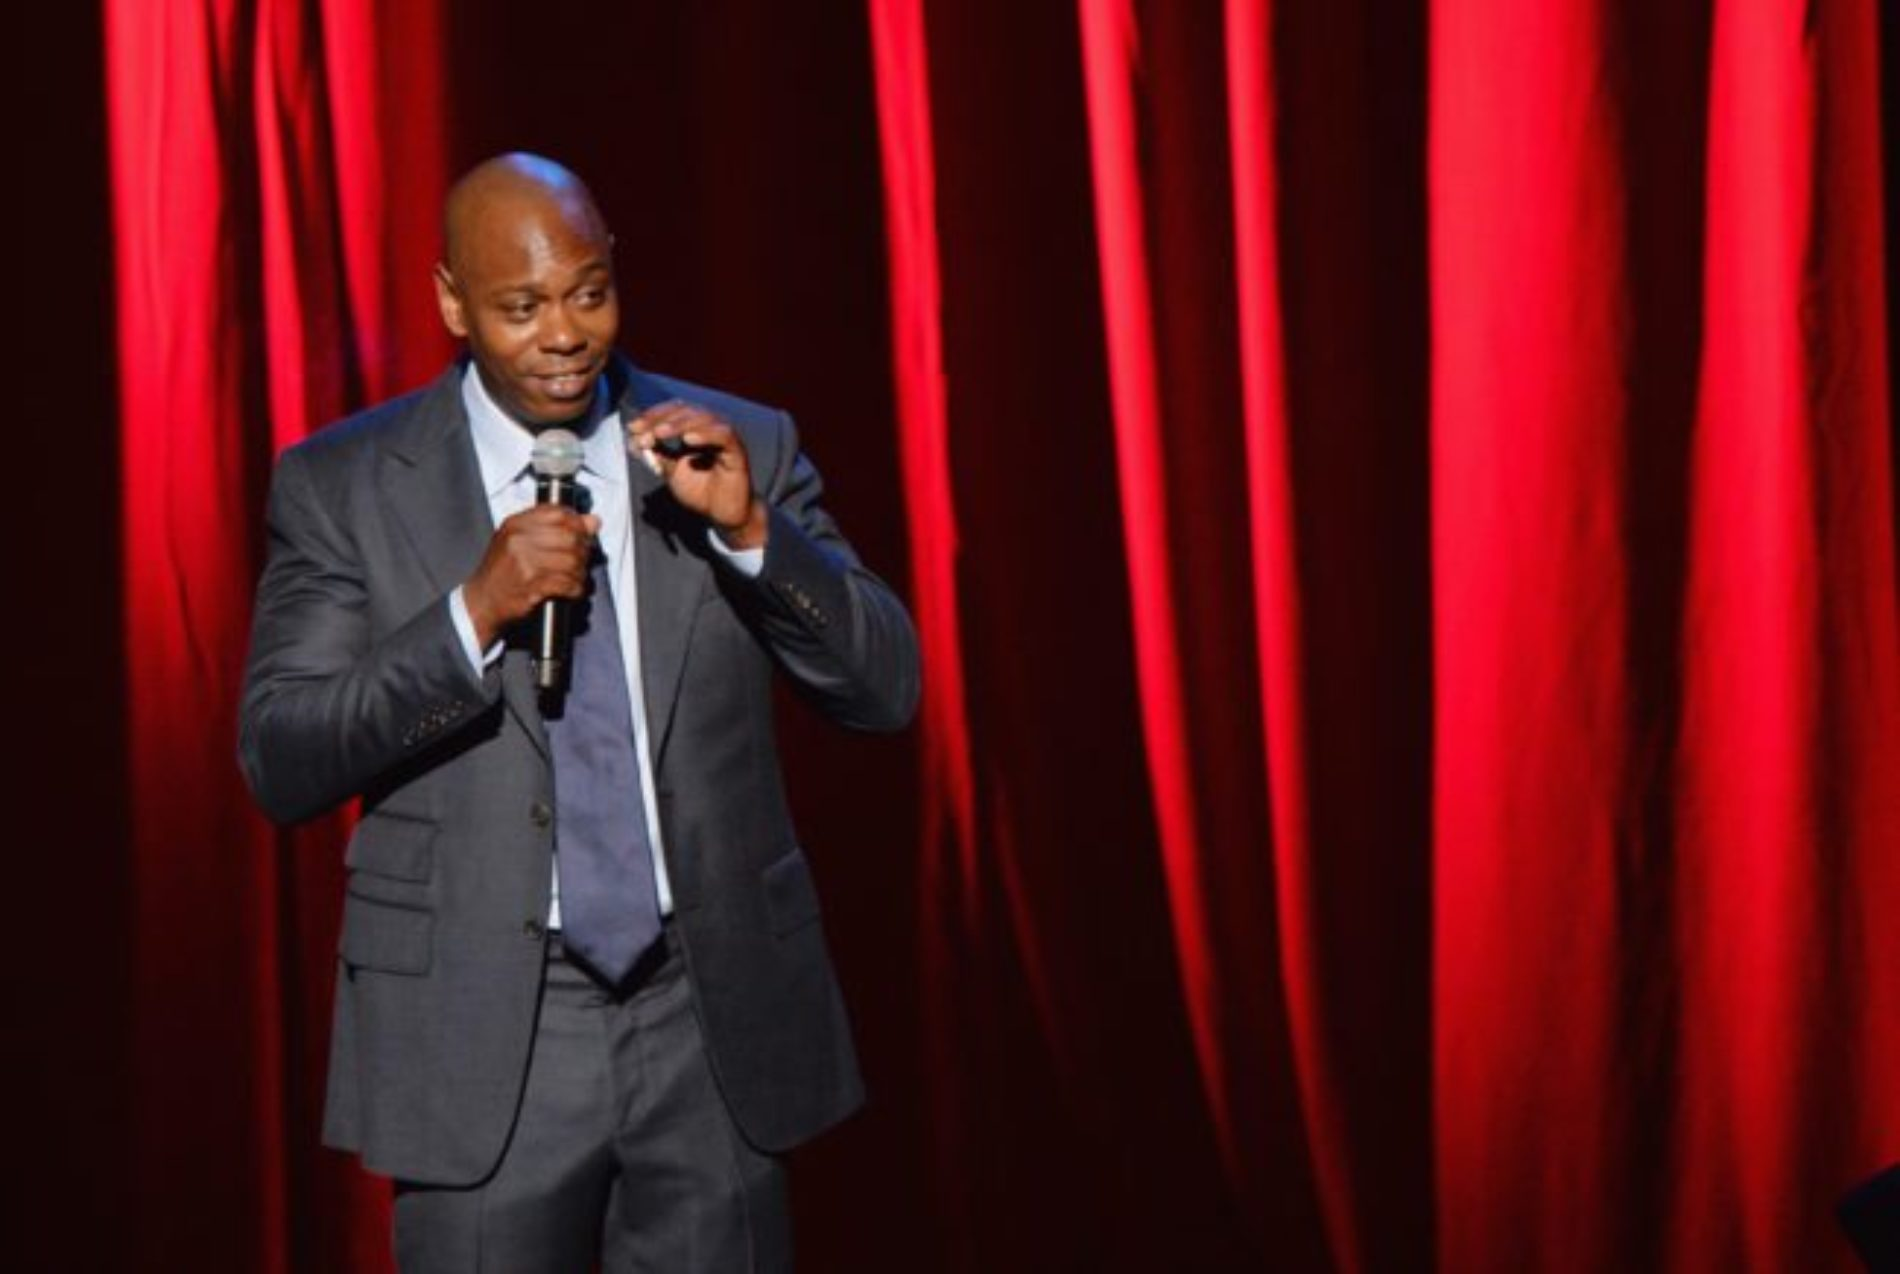 Dave Chappelle rejects accusations of transphobia after 'man-pussy' comments about Caitlyn Jenner